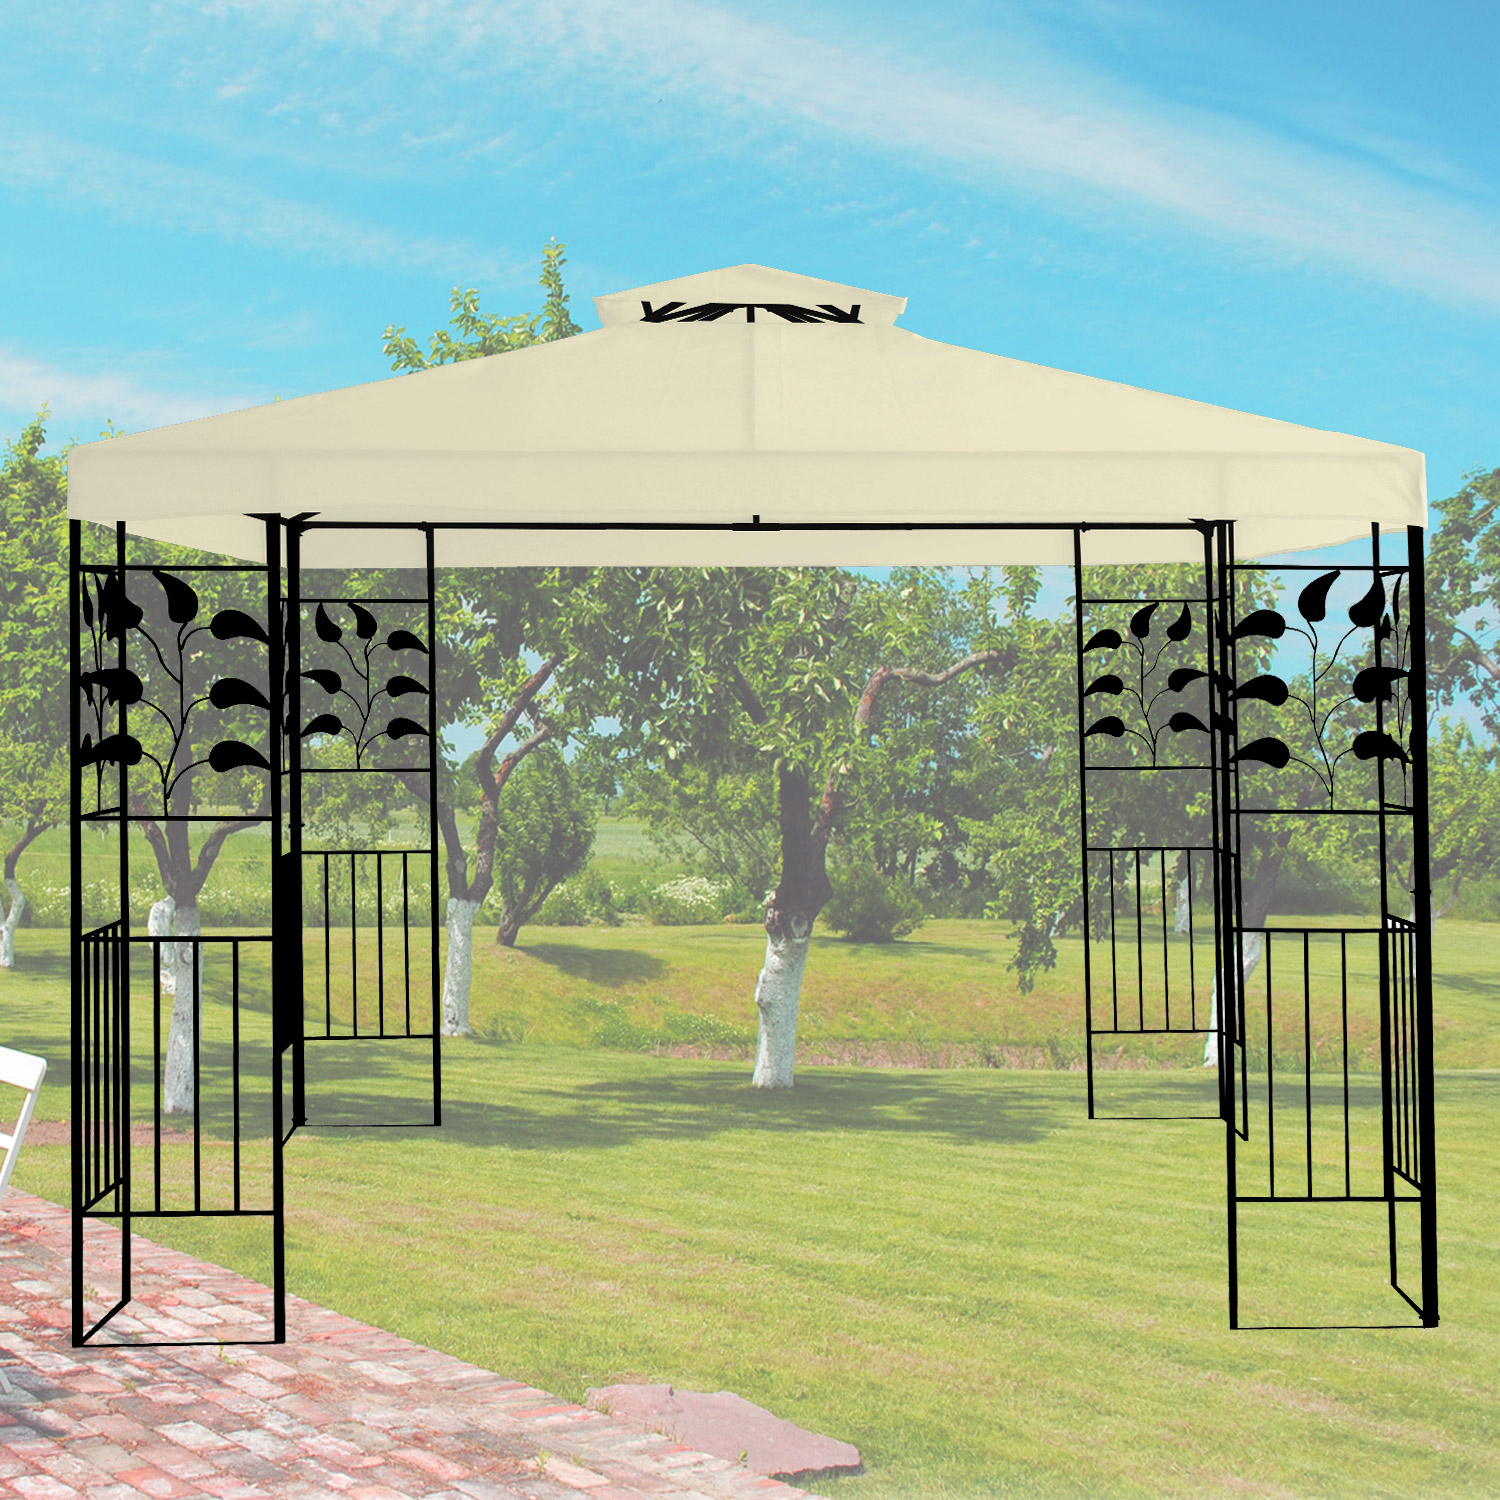 pavillon 3x3m metall gartenpavillon festzelt dach zelt garten wasserfest beige ebay. Black Bedroom Furniture Sets. Home Design Ideas